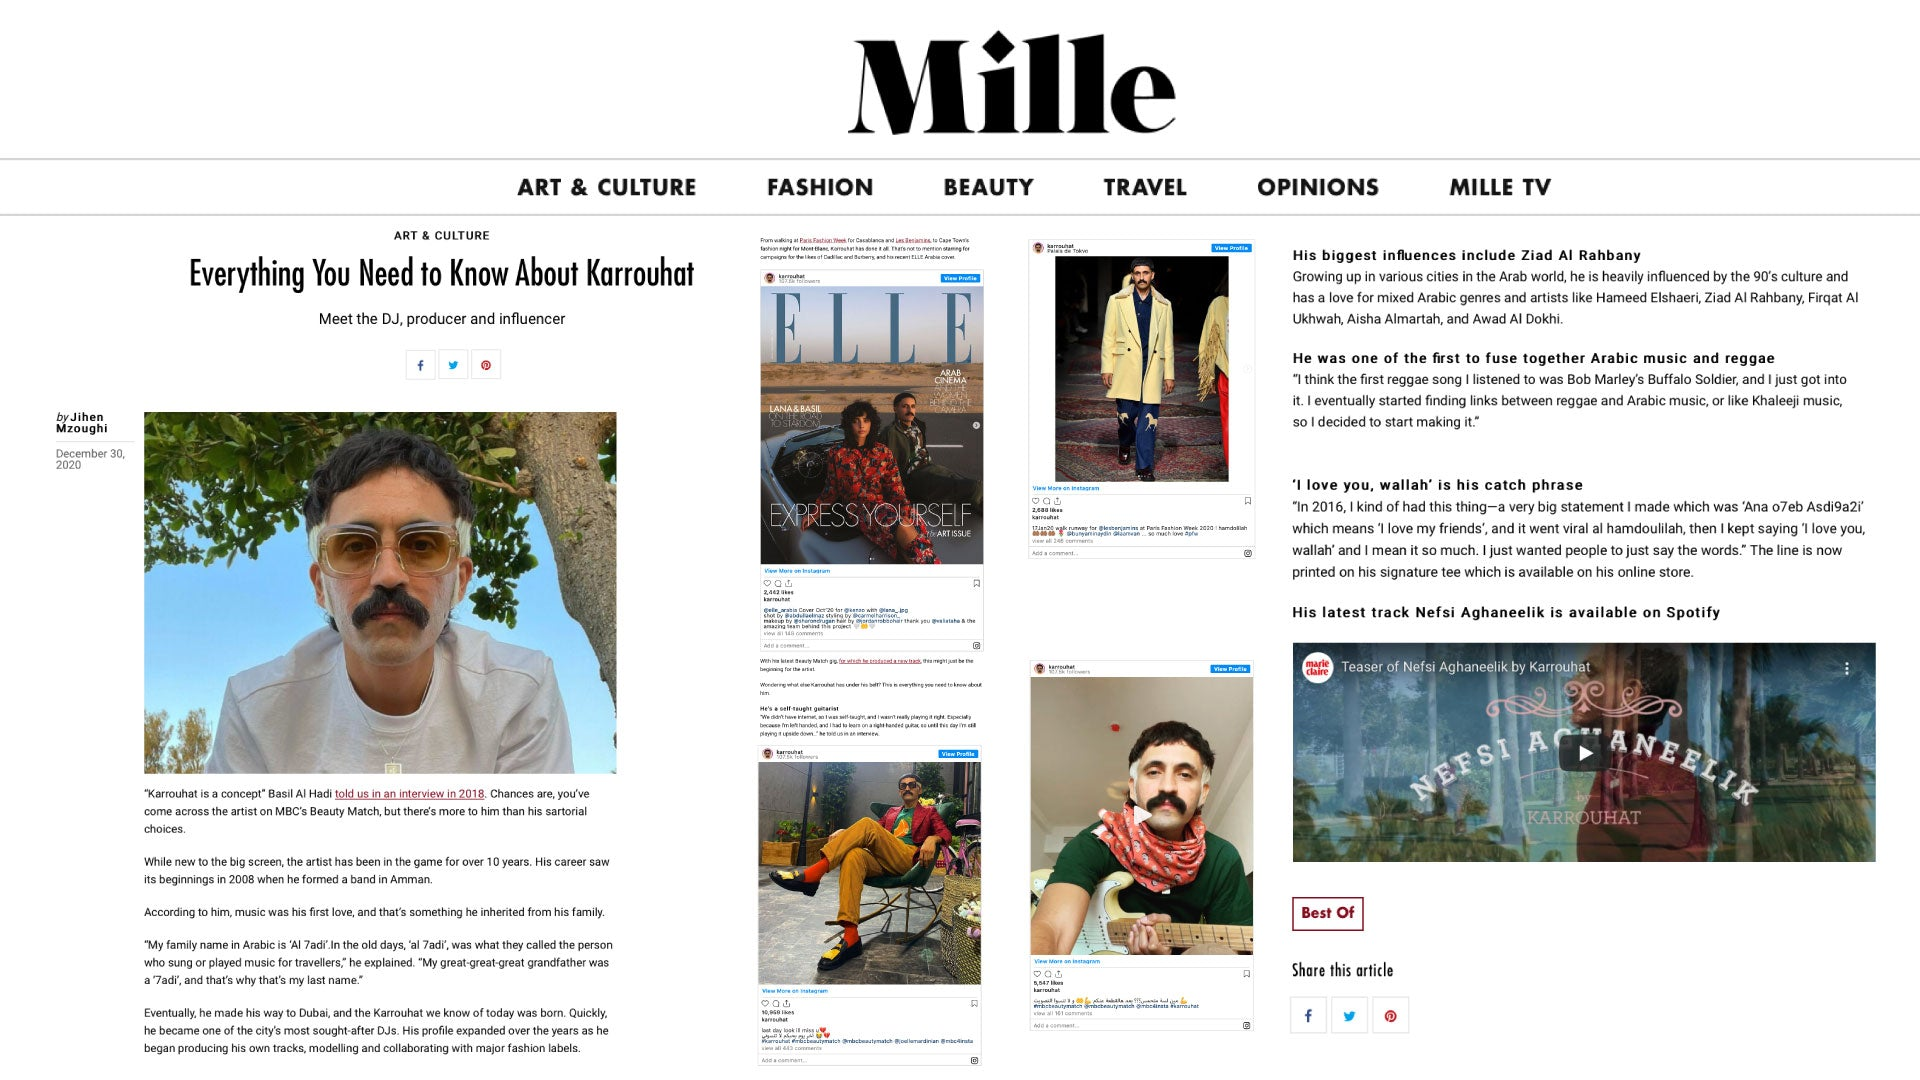 Mille.com Press (everything you need to know about karrouhat)